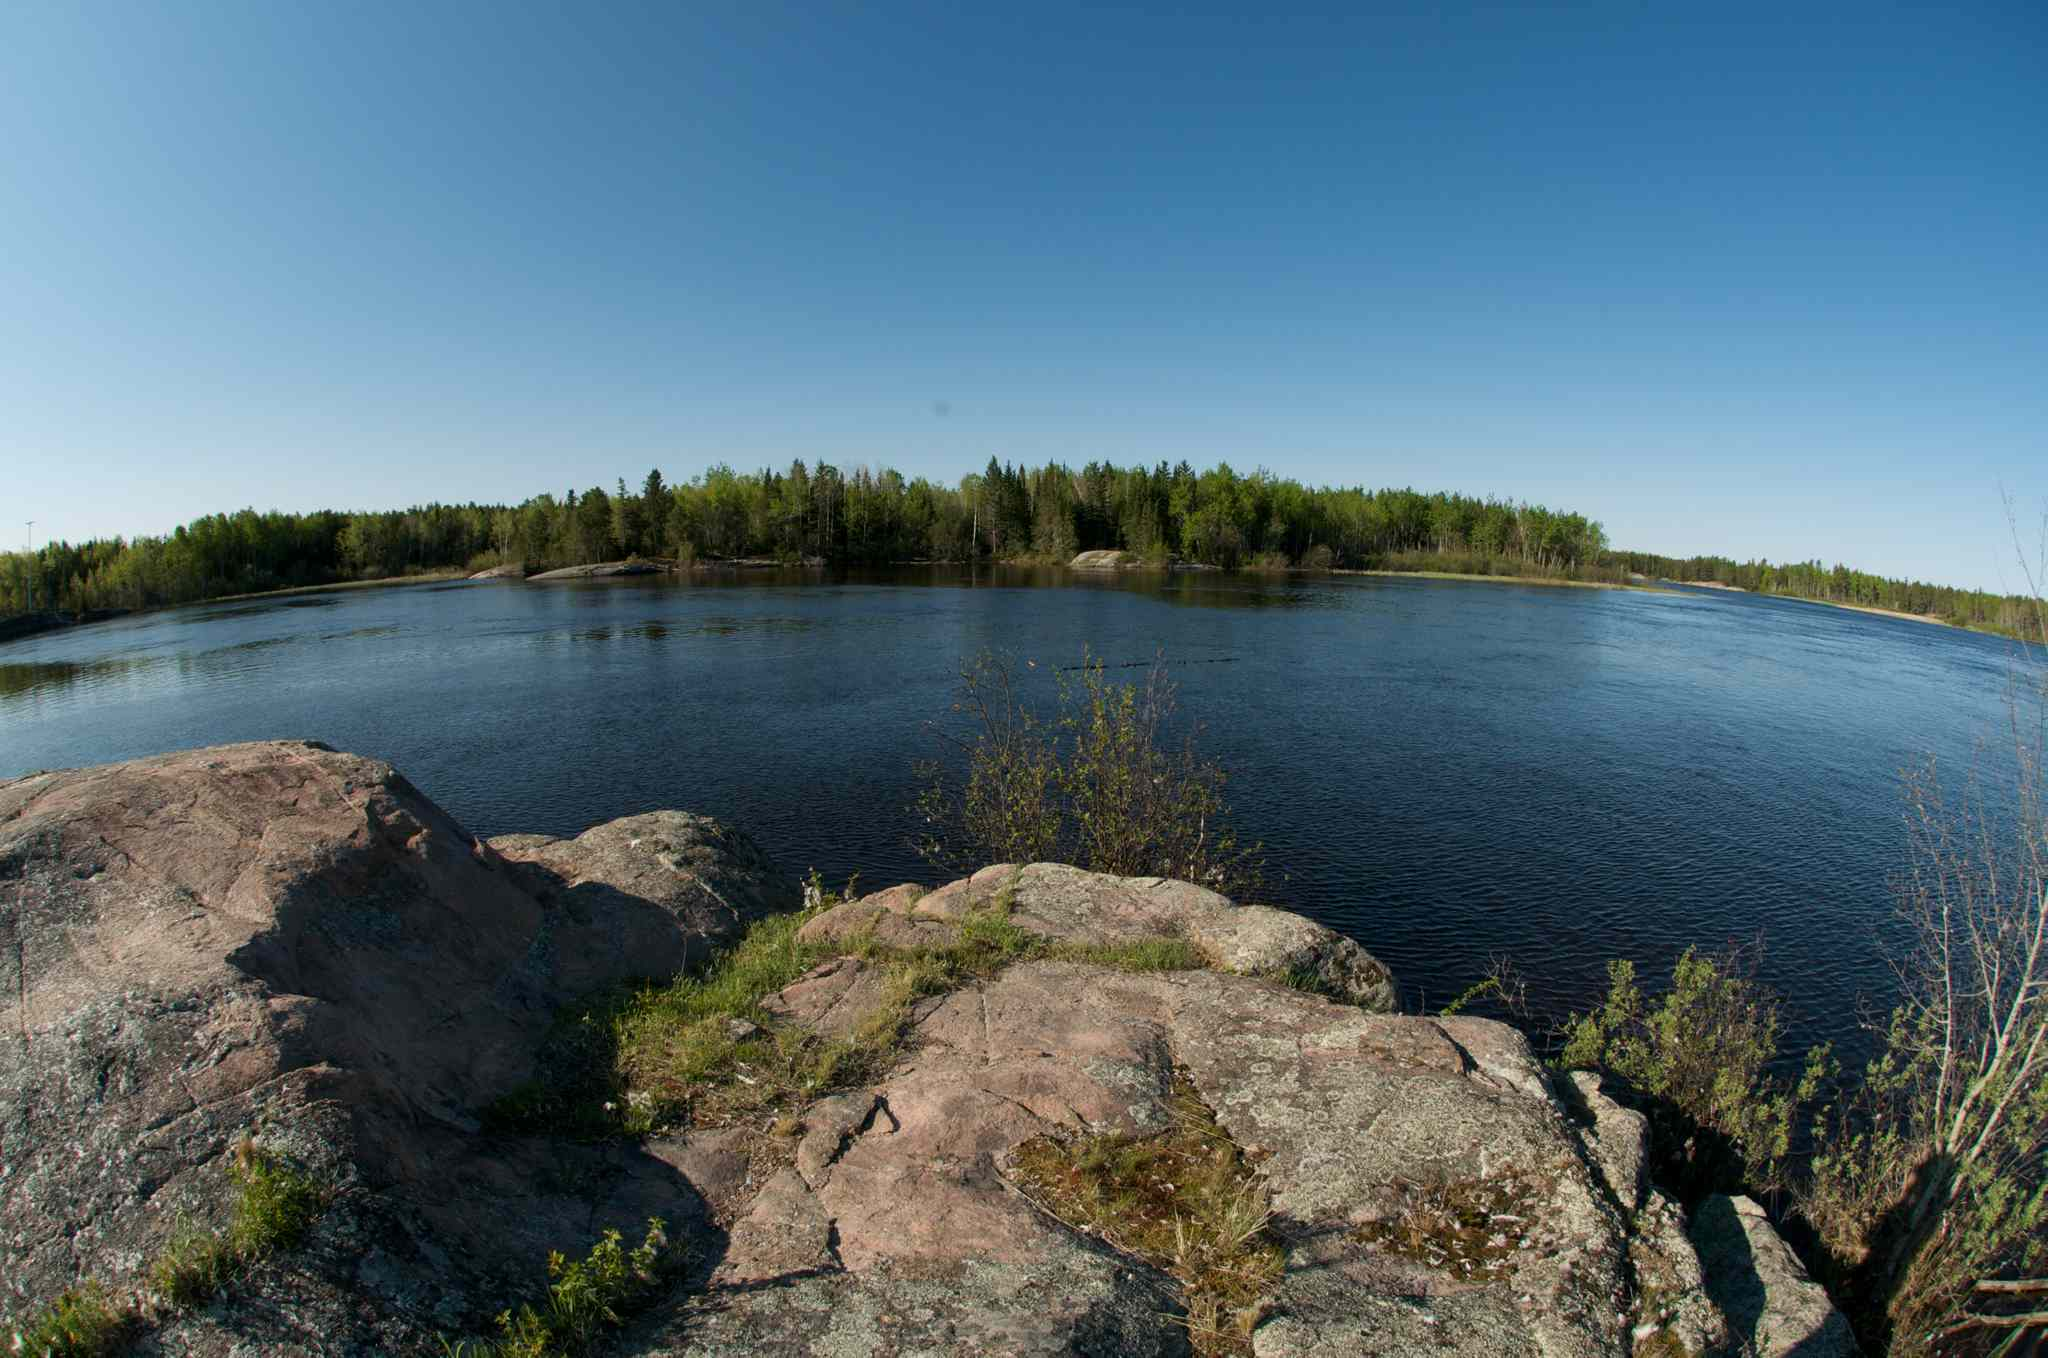 It's hoped Pimachiowin Aki will be recognized as a UNESCO World Heritage Site. (J.J. Ali)